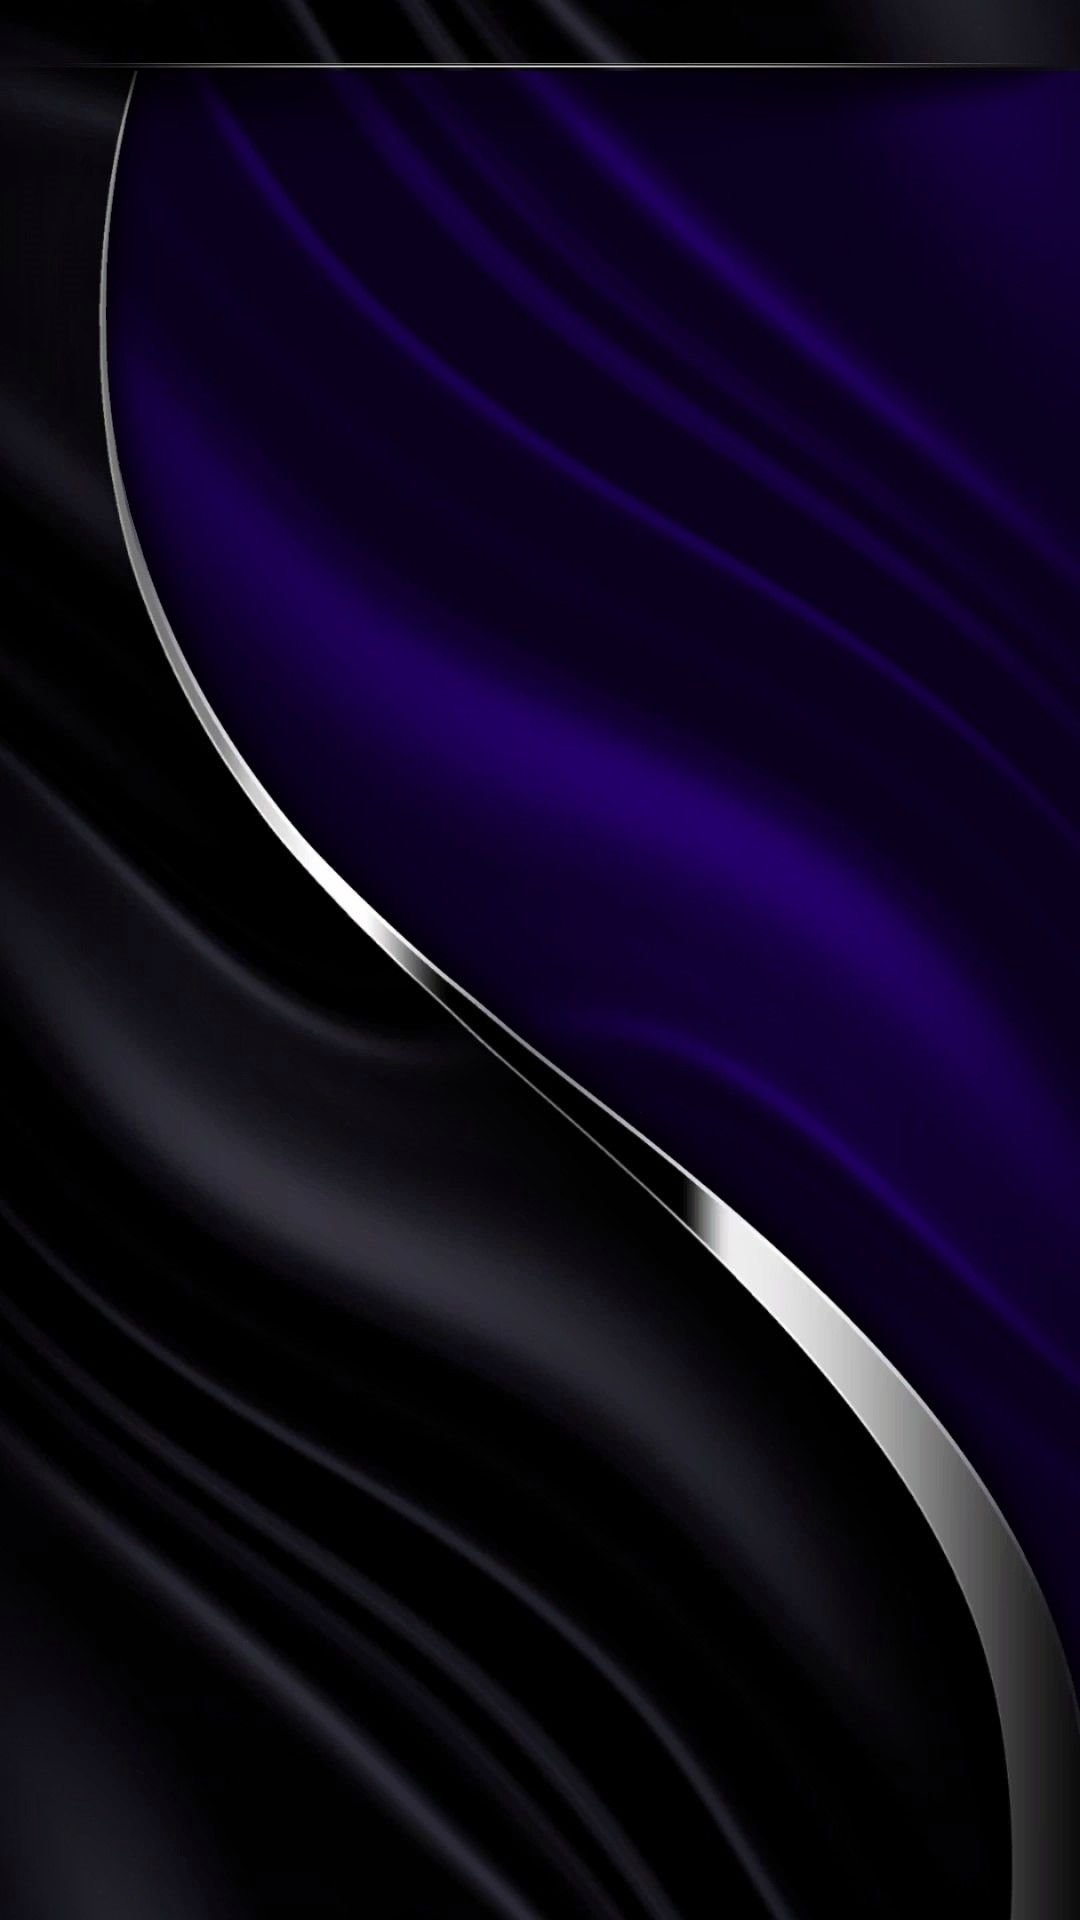 Pin By Marta On Sotovyj Telefon Oboi Abstract Iphone Wallpaper Abstract Wallpaper Backgrounds Phone Wallpapers